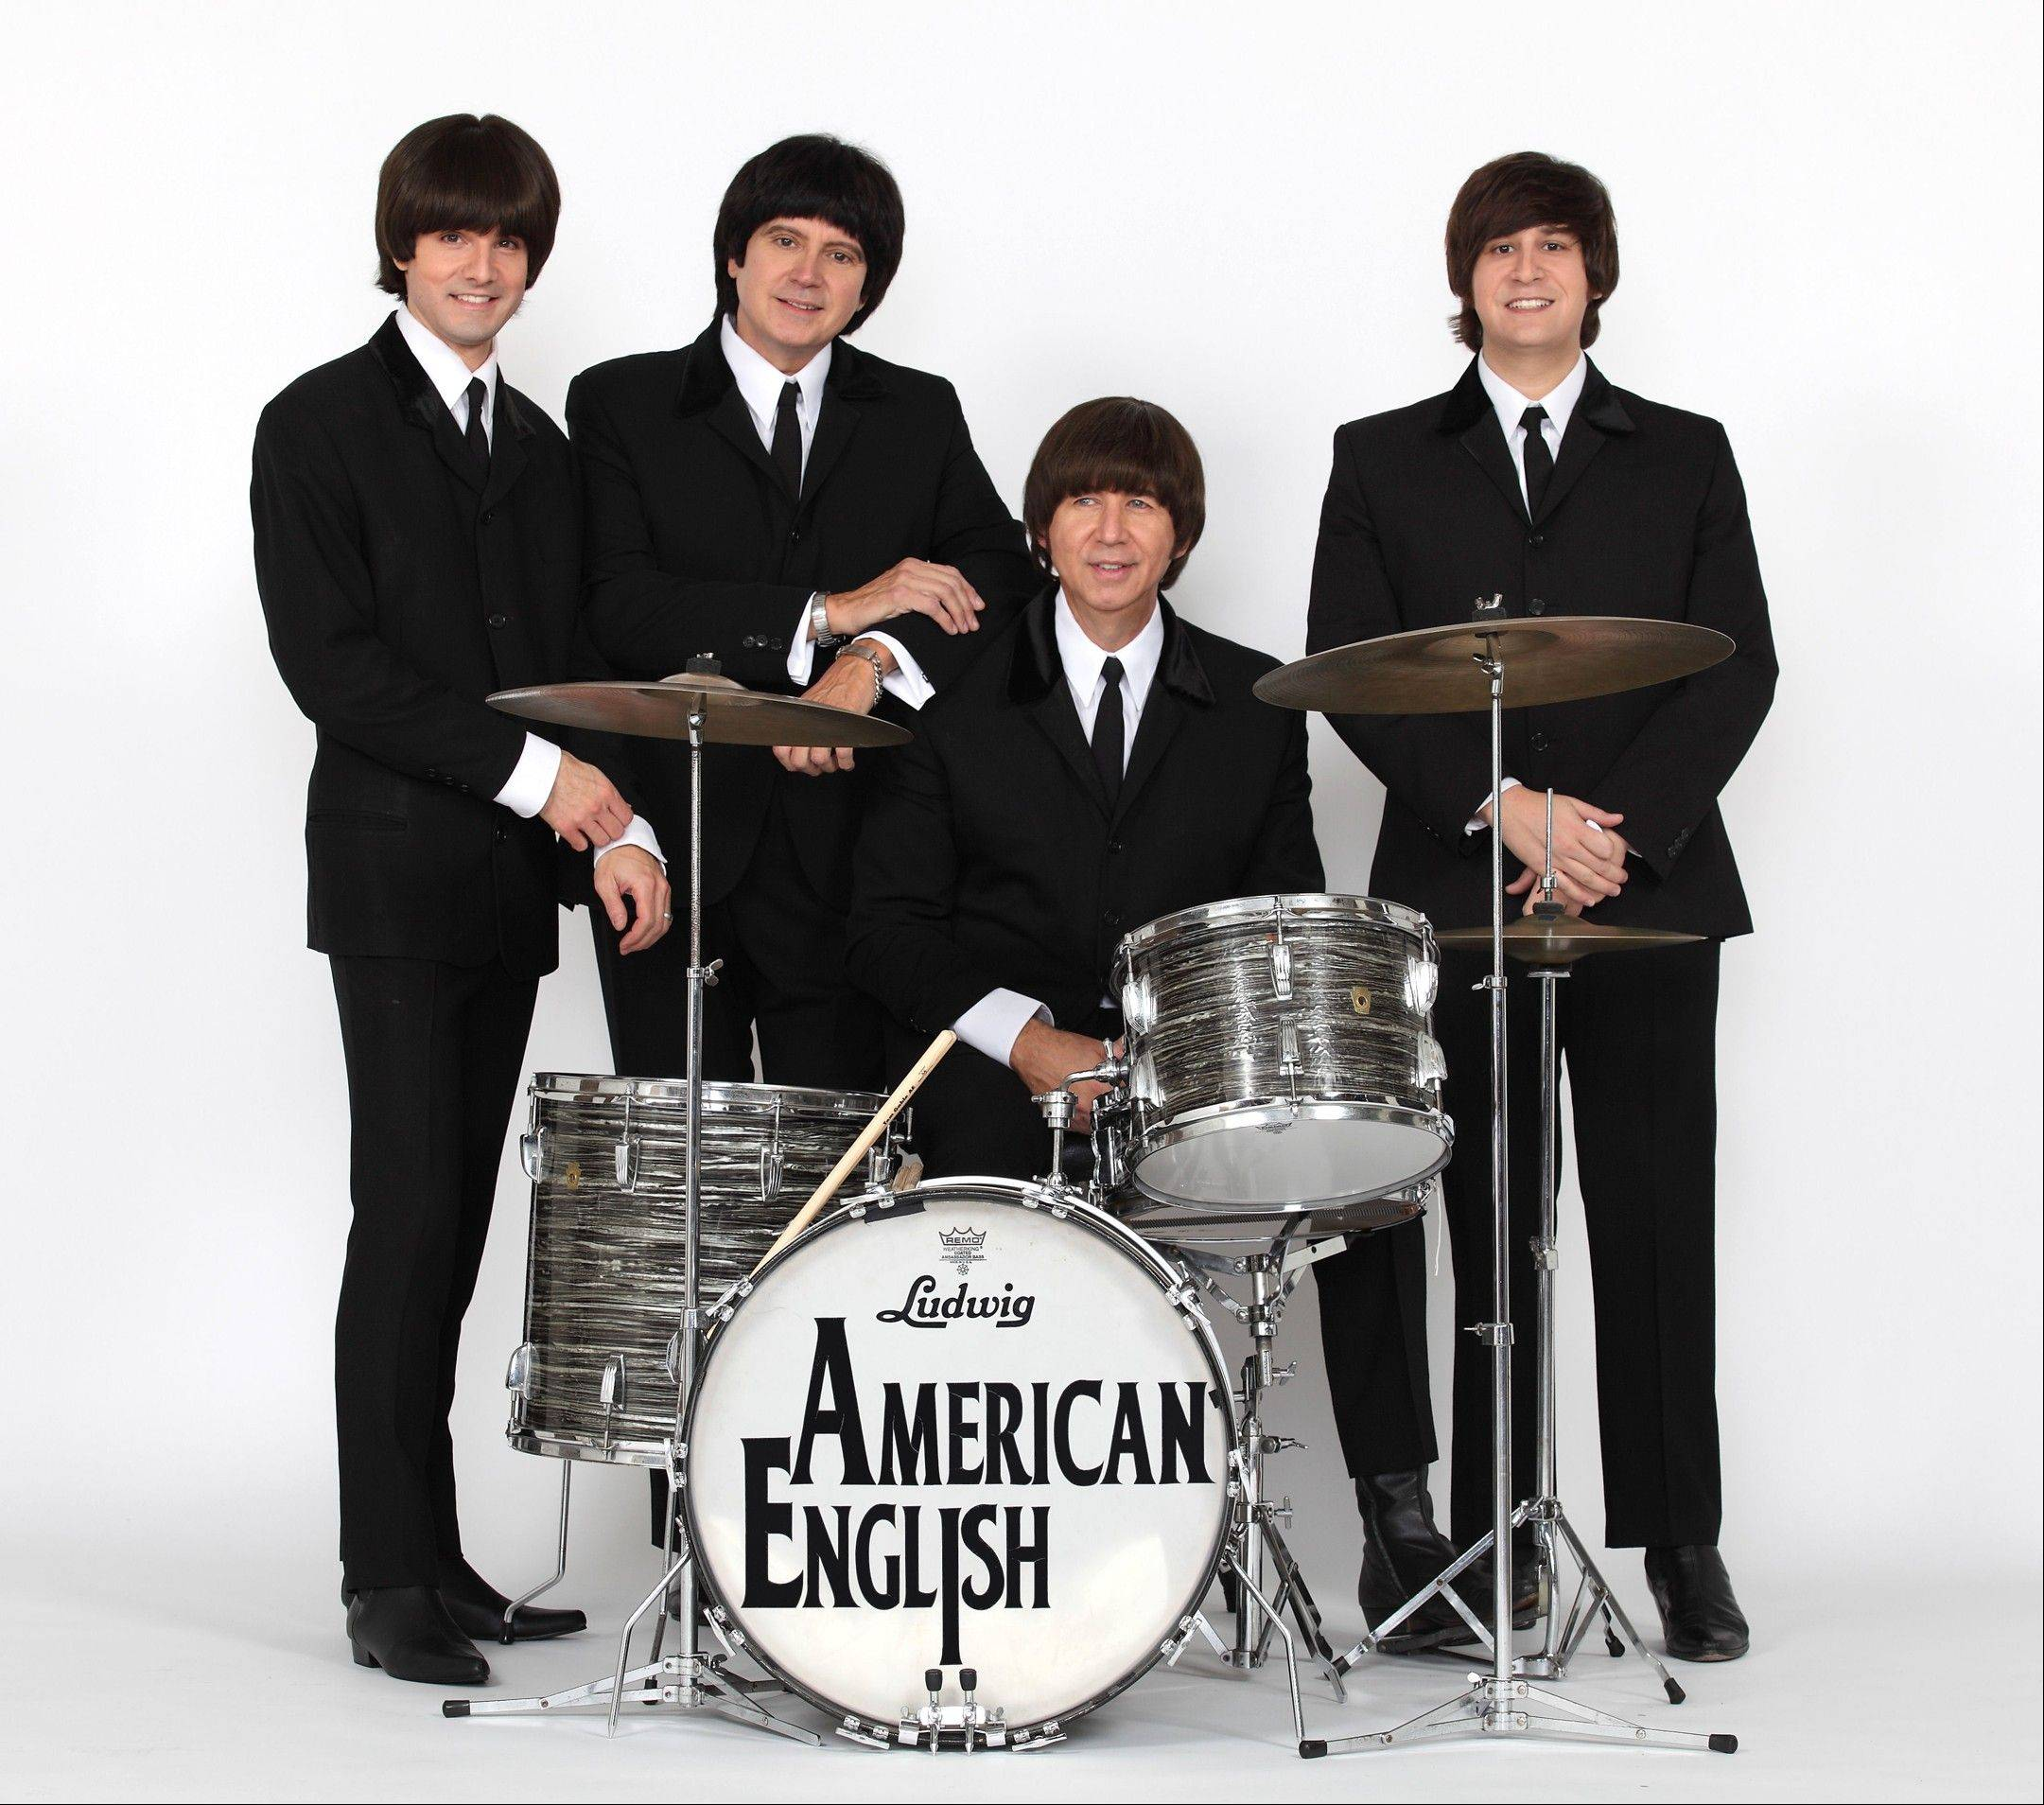 American English headlines the Raue Center for the Arts in Crystal Lake on Saturday, Jan. 5.